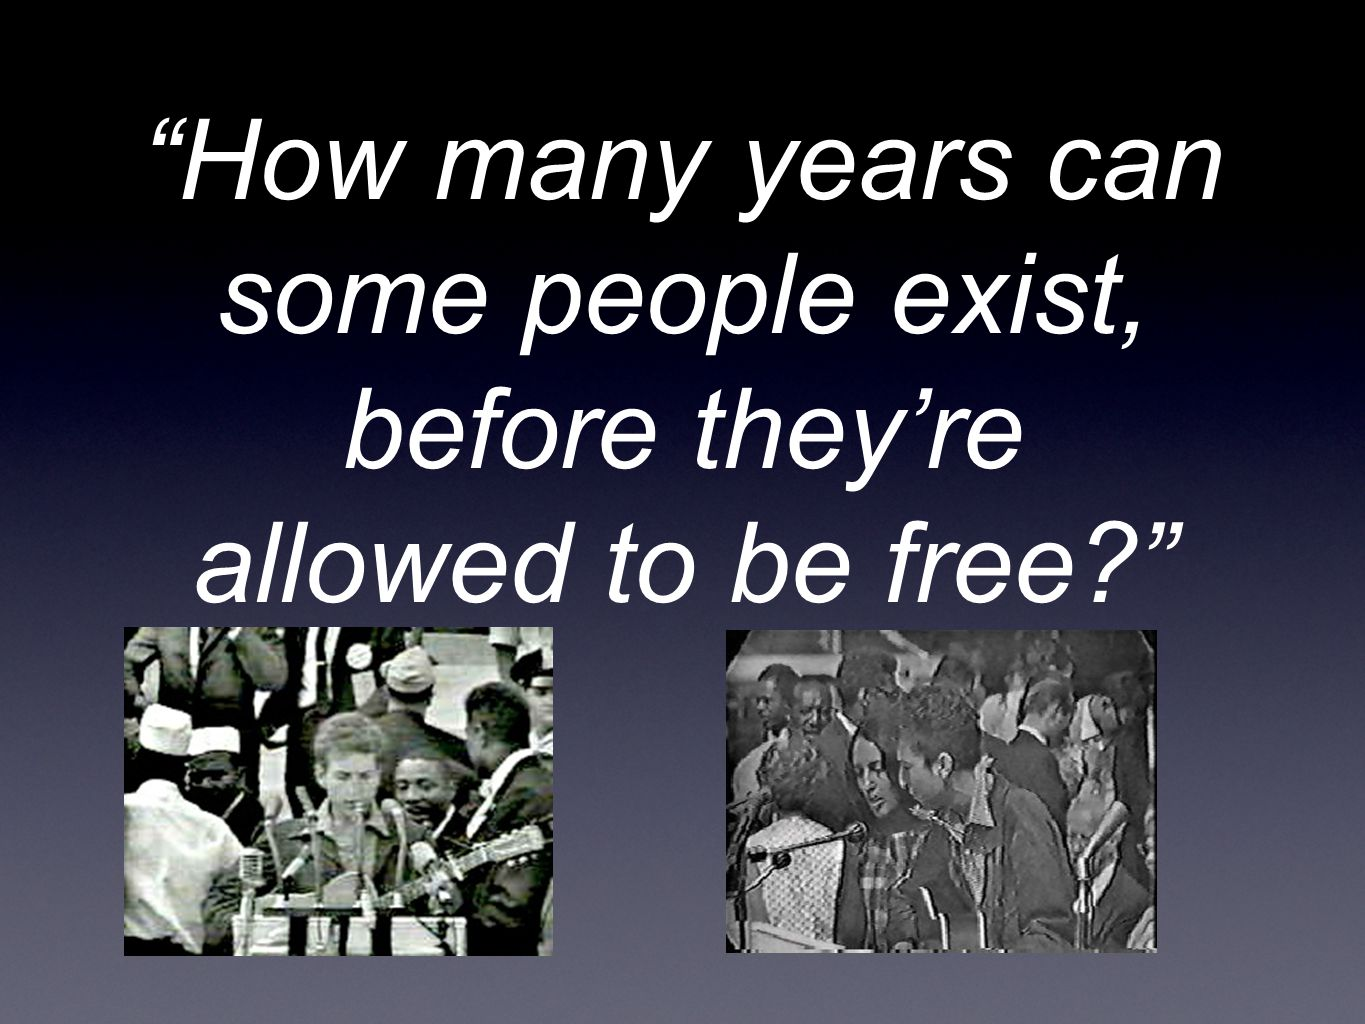 How many years can some people exist, before they're allowed to be free?